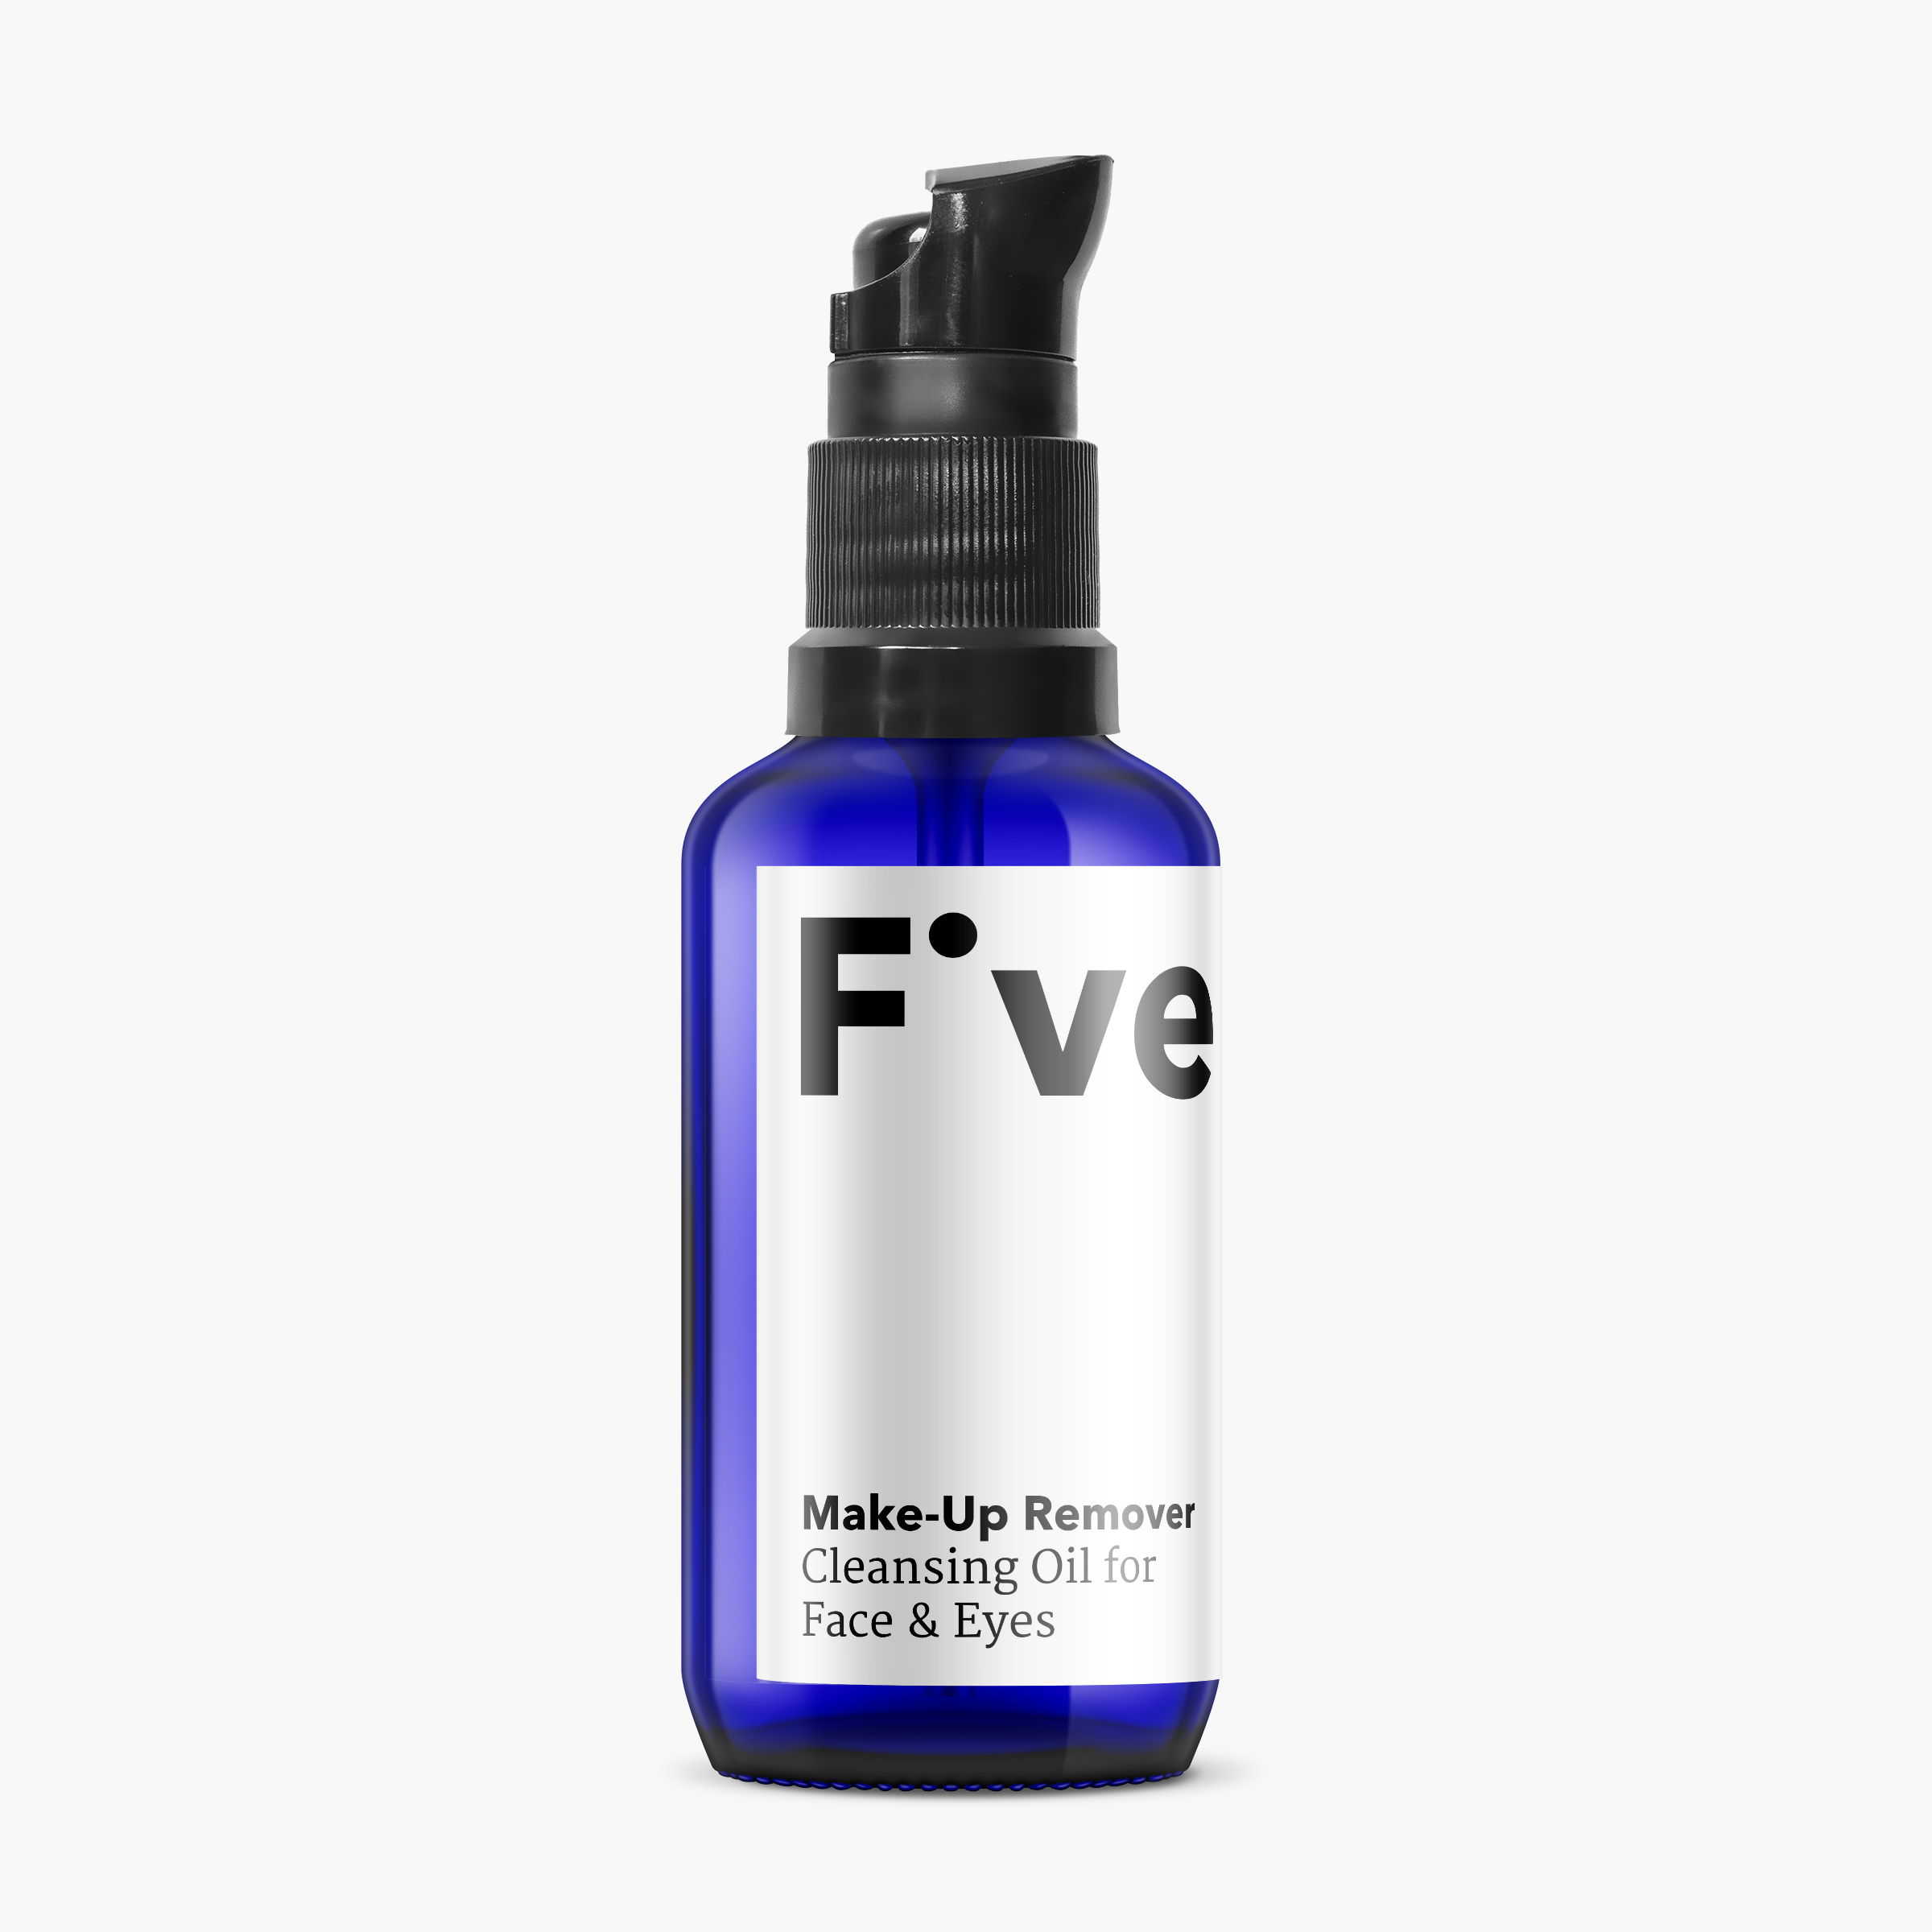 Five Make-Up Remover Cleansing Oil for Face & Eyes